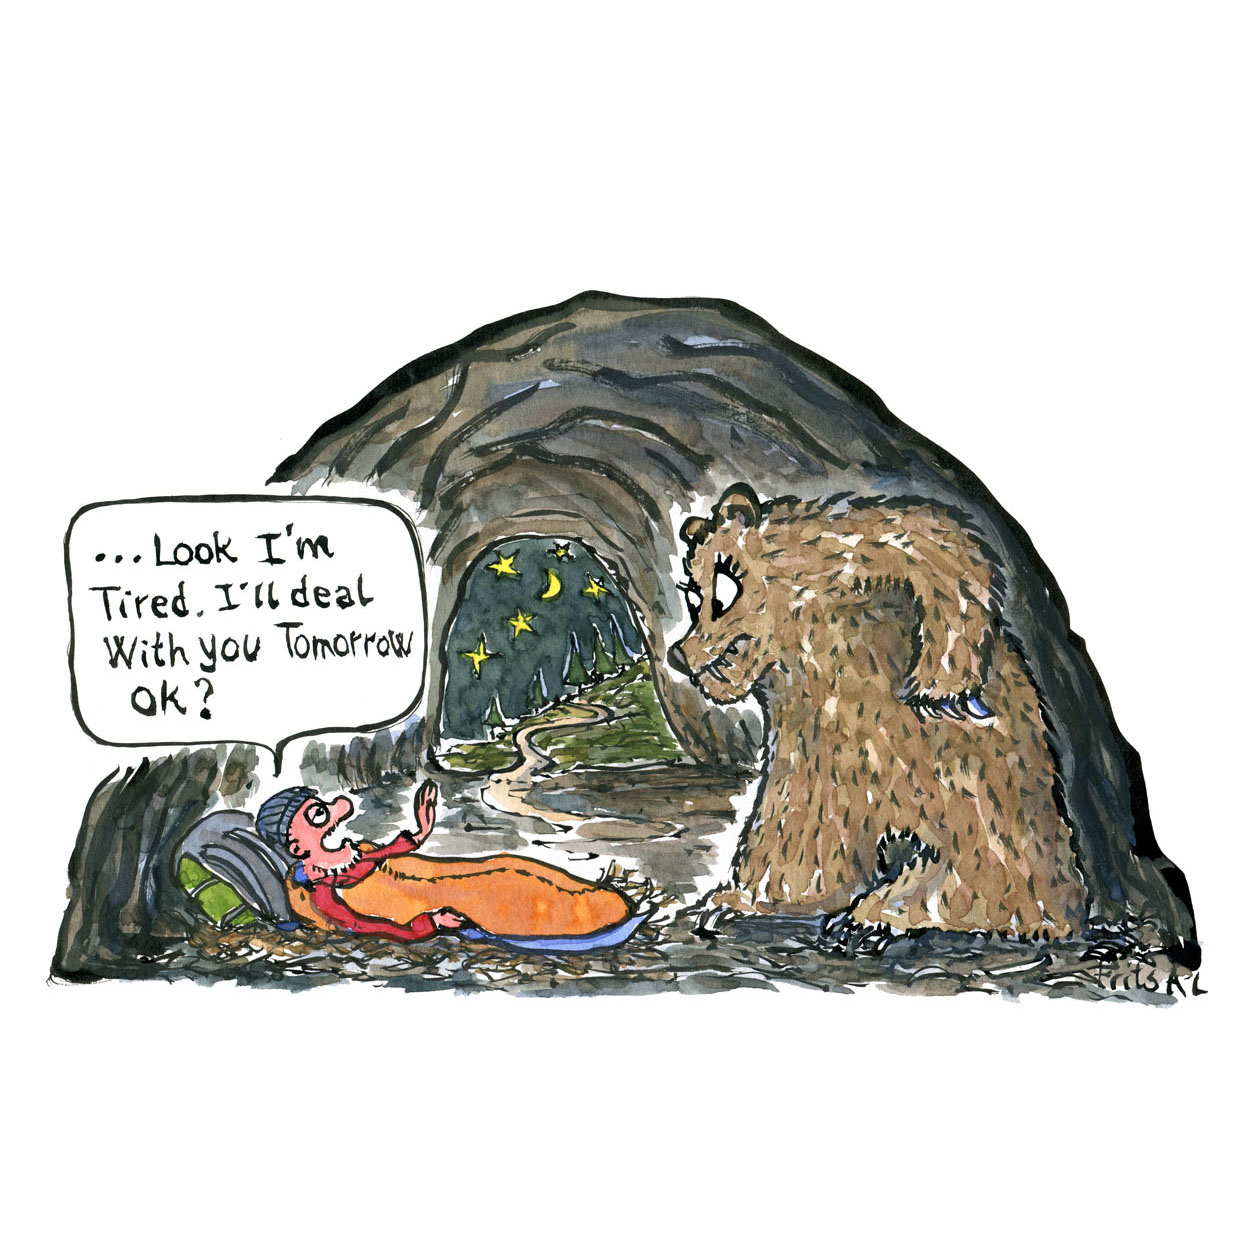 """Hiker in sleeping bag in bear cave saying """"look, i'm tired. I'll deal with you tomorrow. Ok?"""" Illustration by Frits Ahlefeldt"""